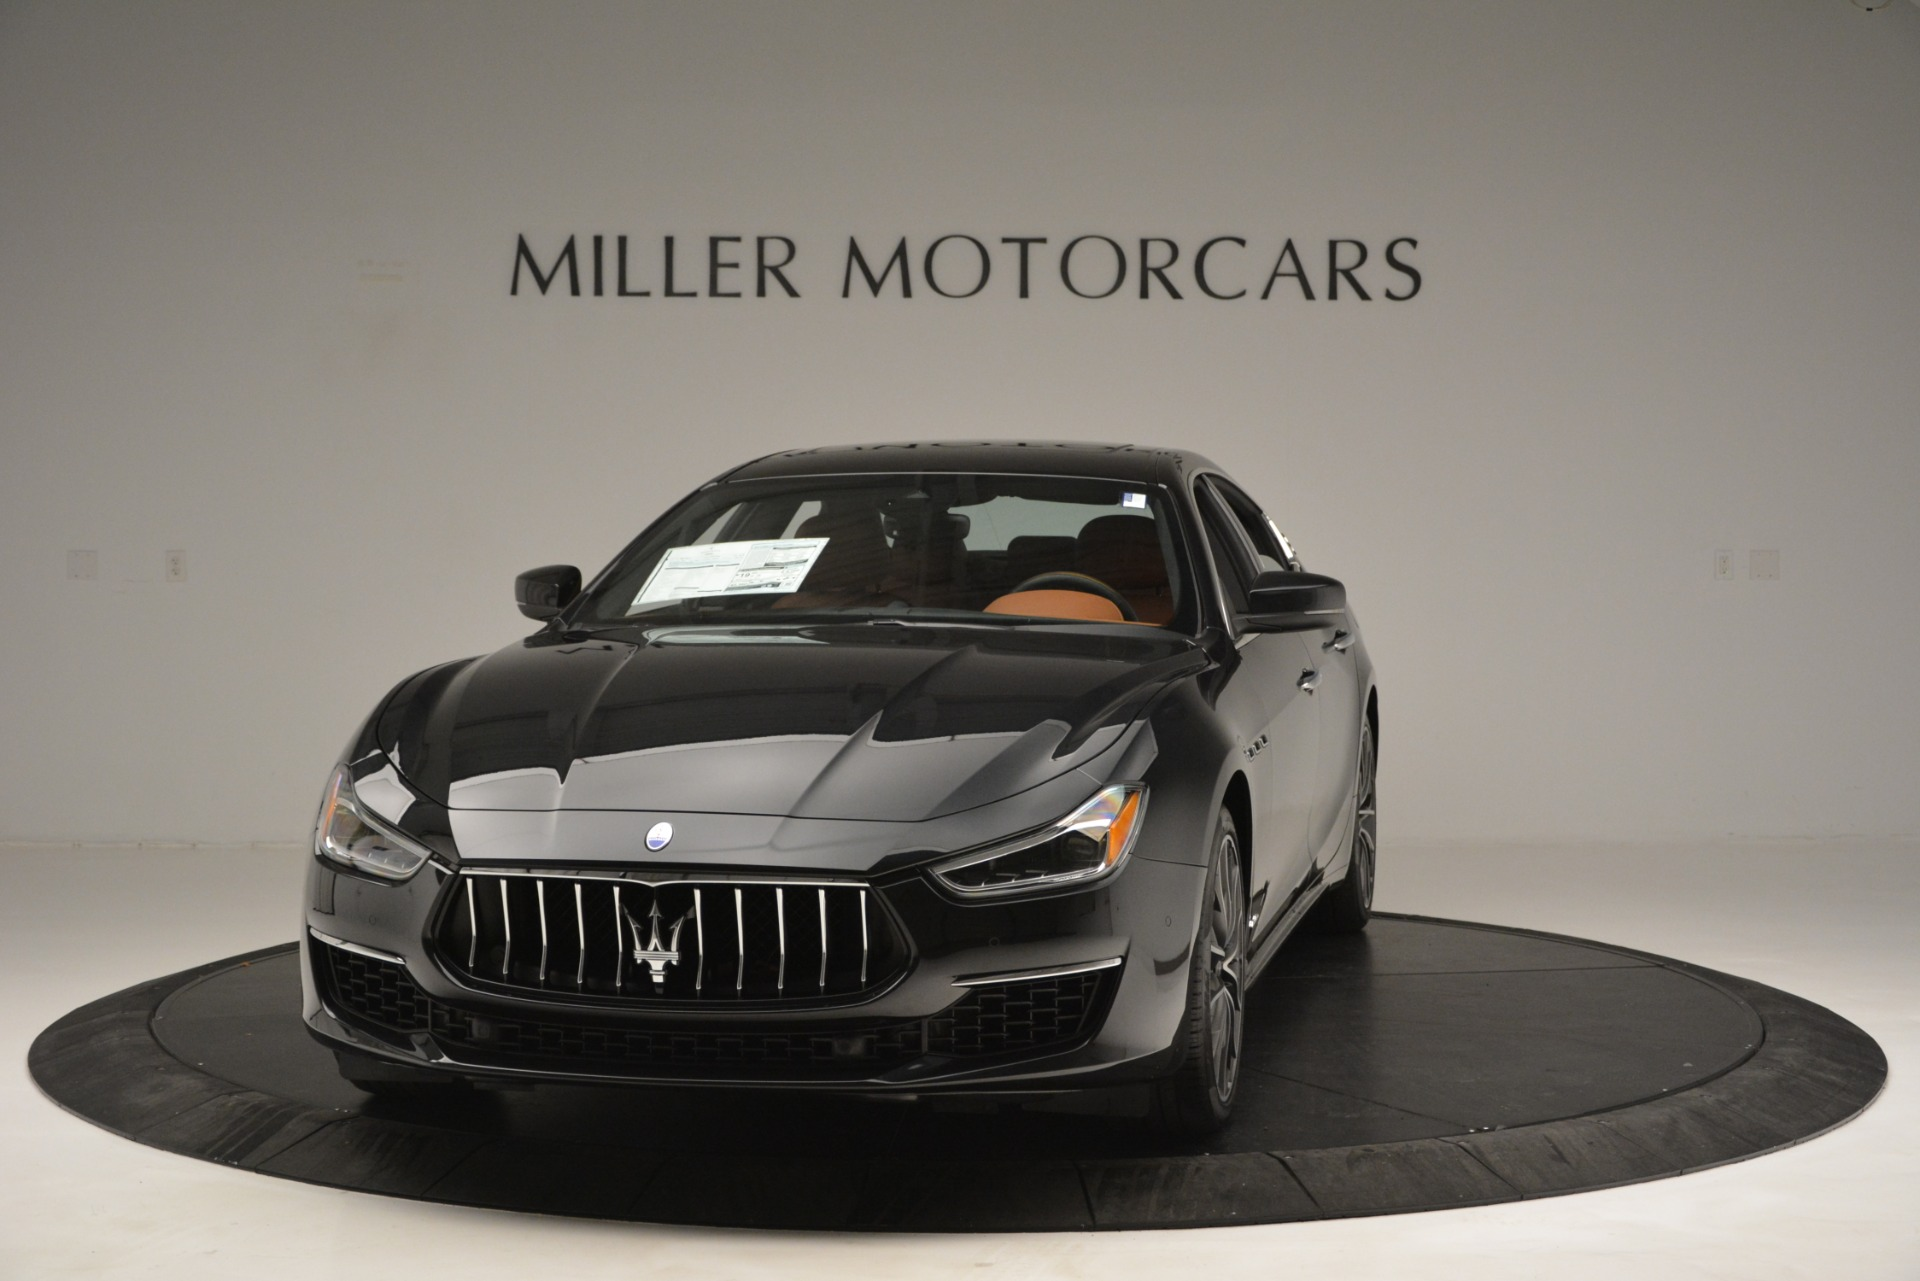 New 2019 Maserati Ghibli S Q4 GranLusso for sale Sold at Rolls-Royce Motor Cars Greenwich in Greenwich CT 06830 1